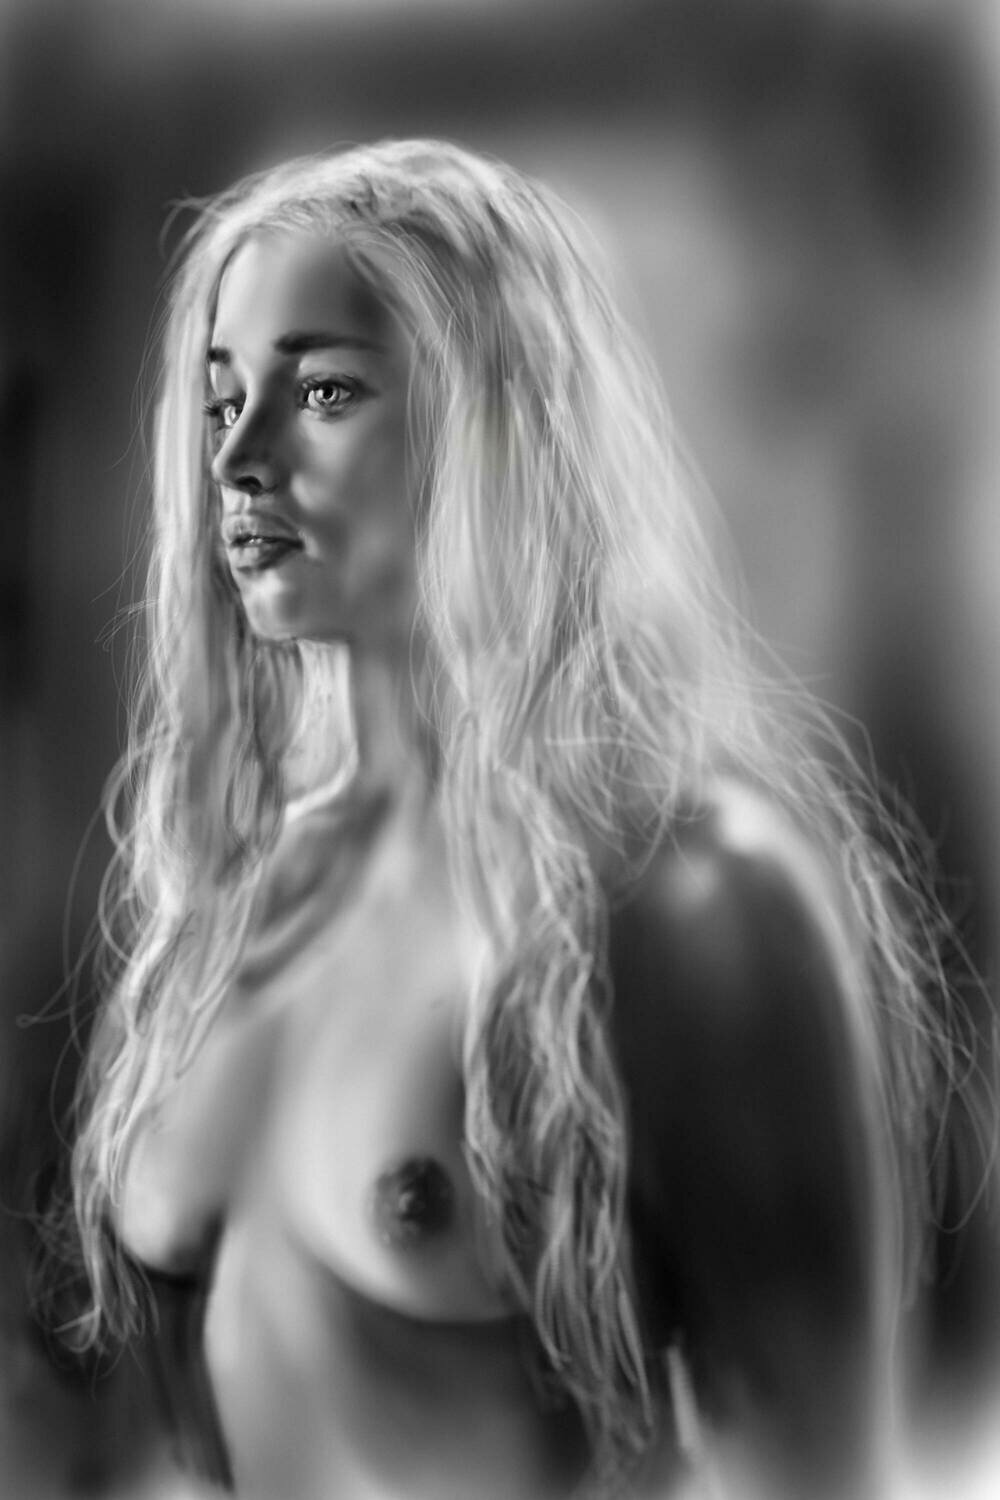 NSFW Daenerys Targaryen Game of Thrones Art Print